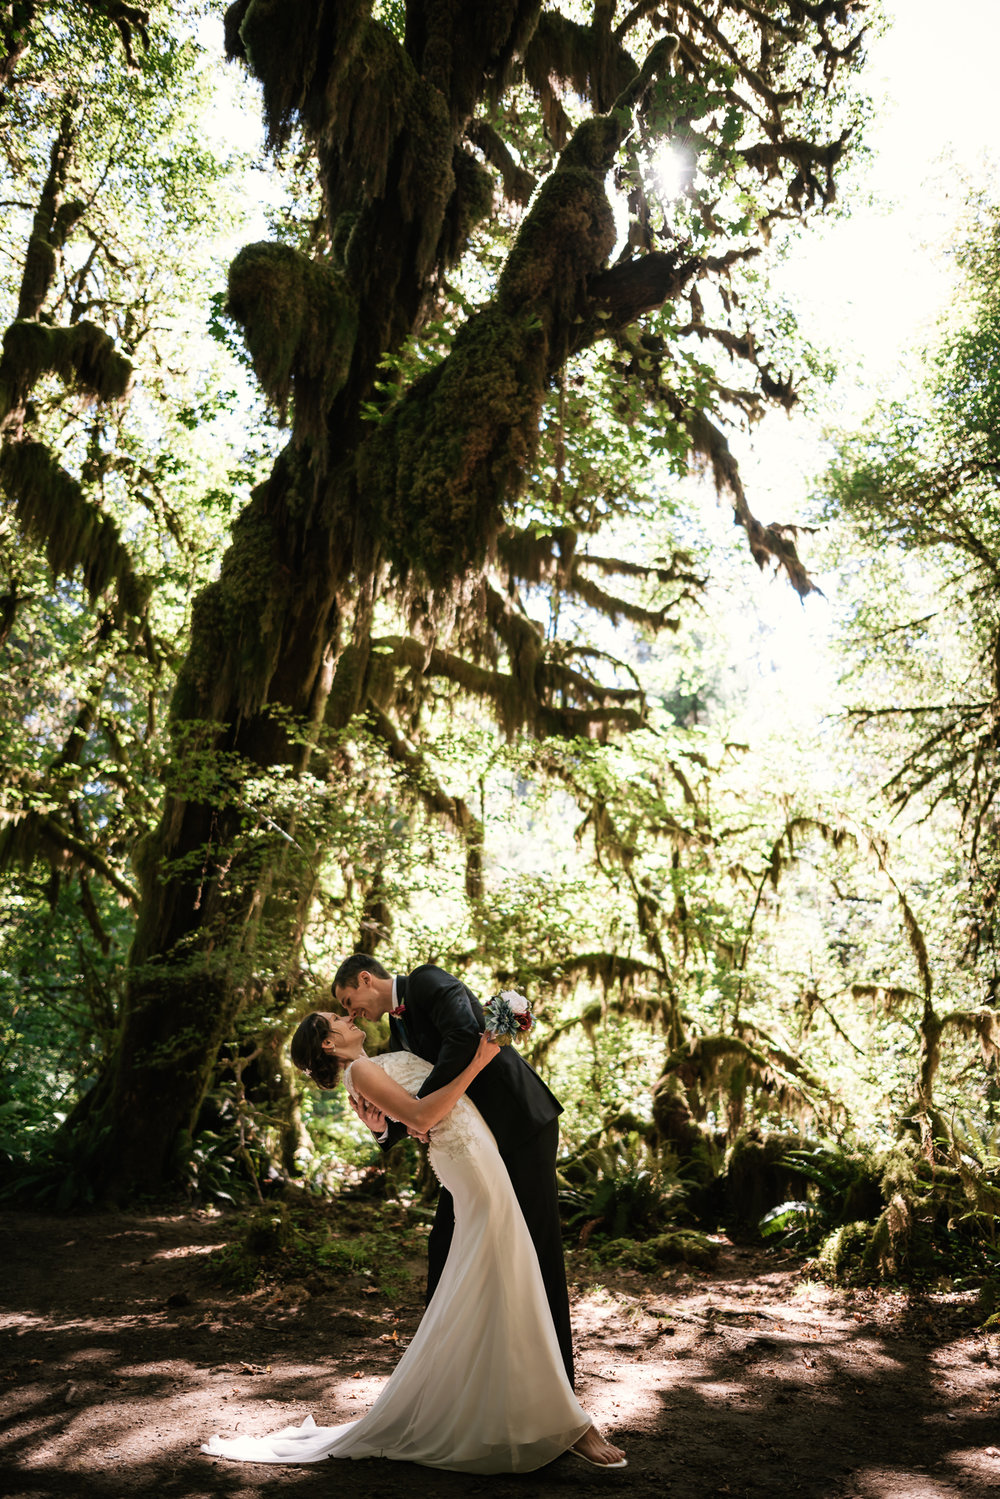 Romantic dip before the towering Cedar Trees in the Hall of Moses in Hoh Rainforest.